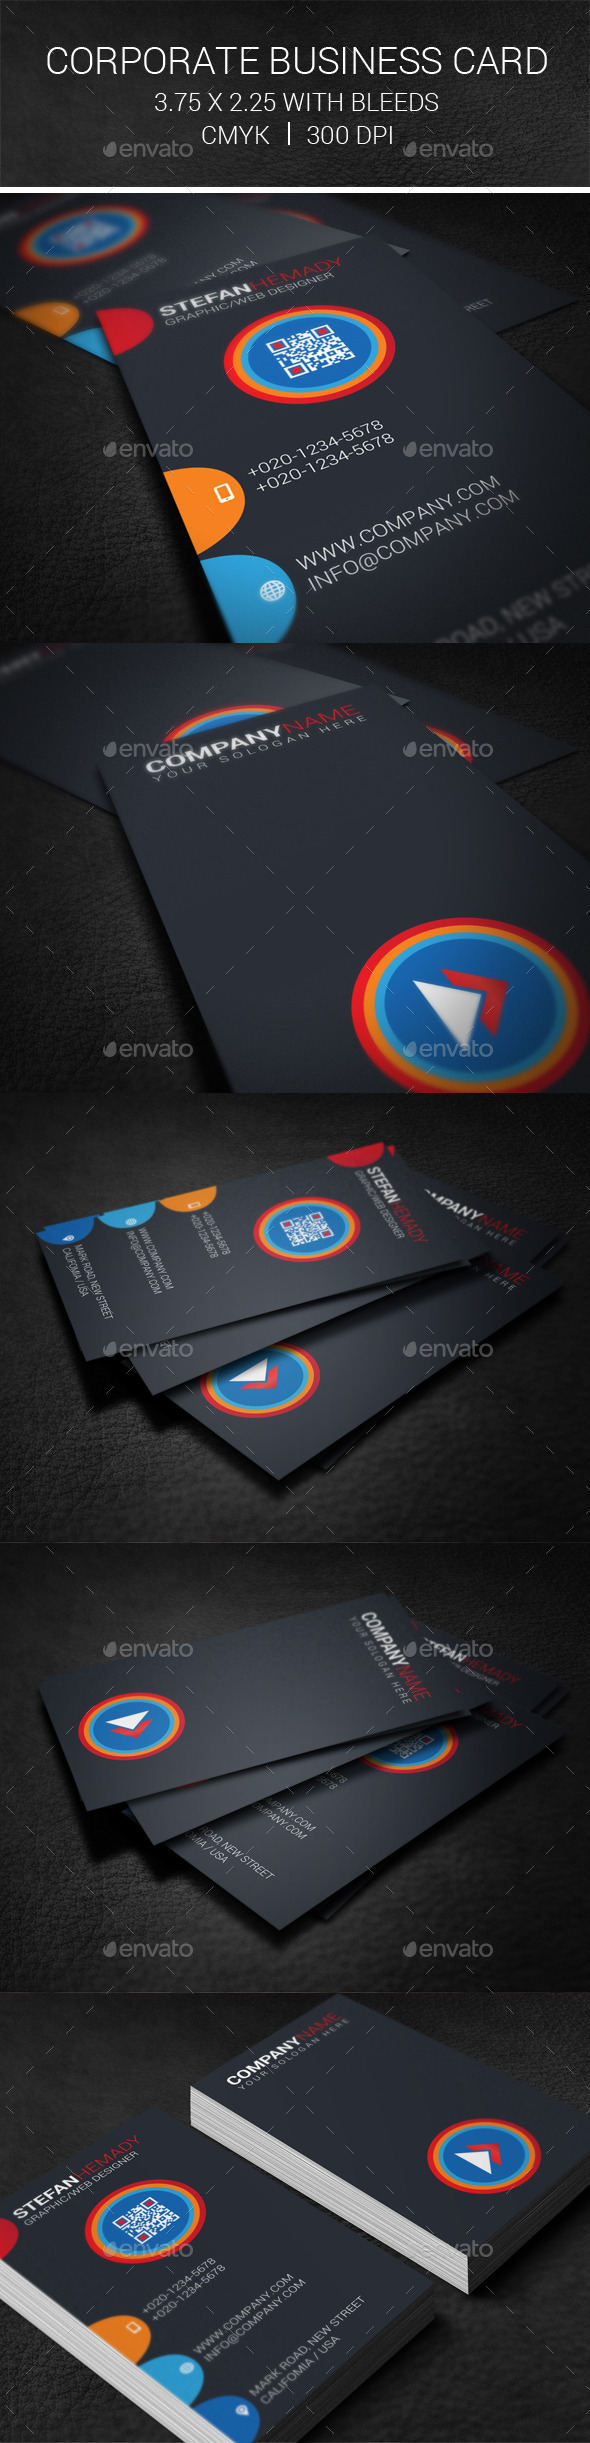 GraphicRiver Corporate Business Card 10027946